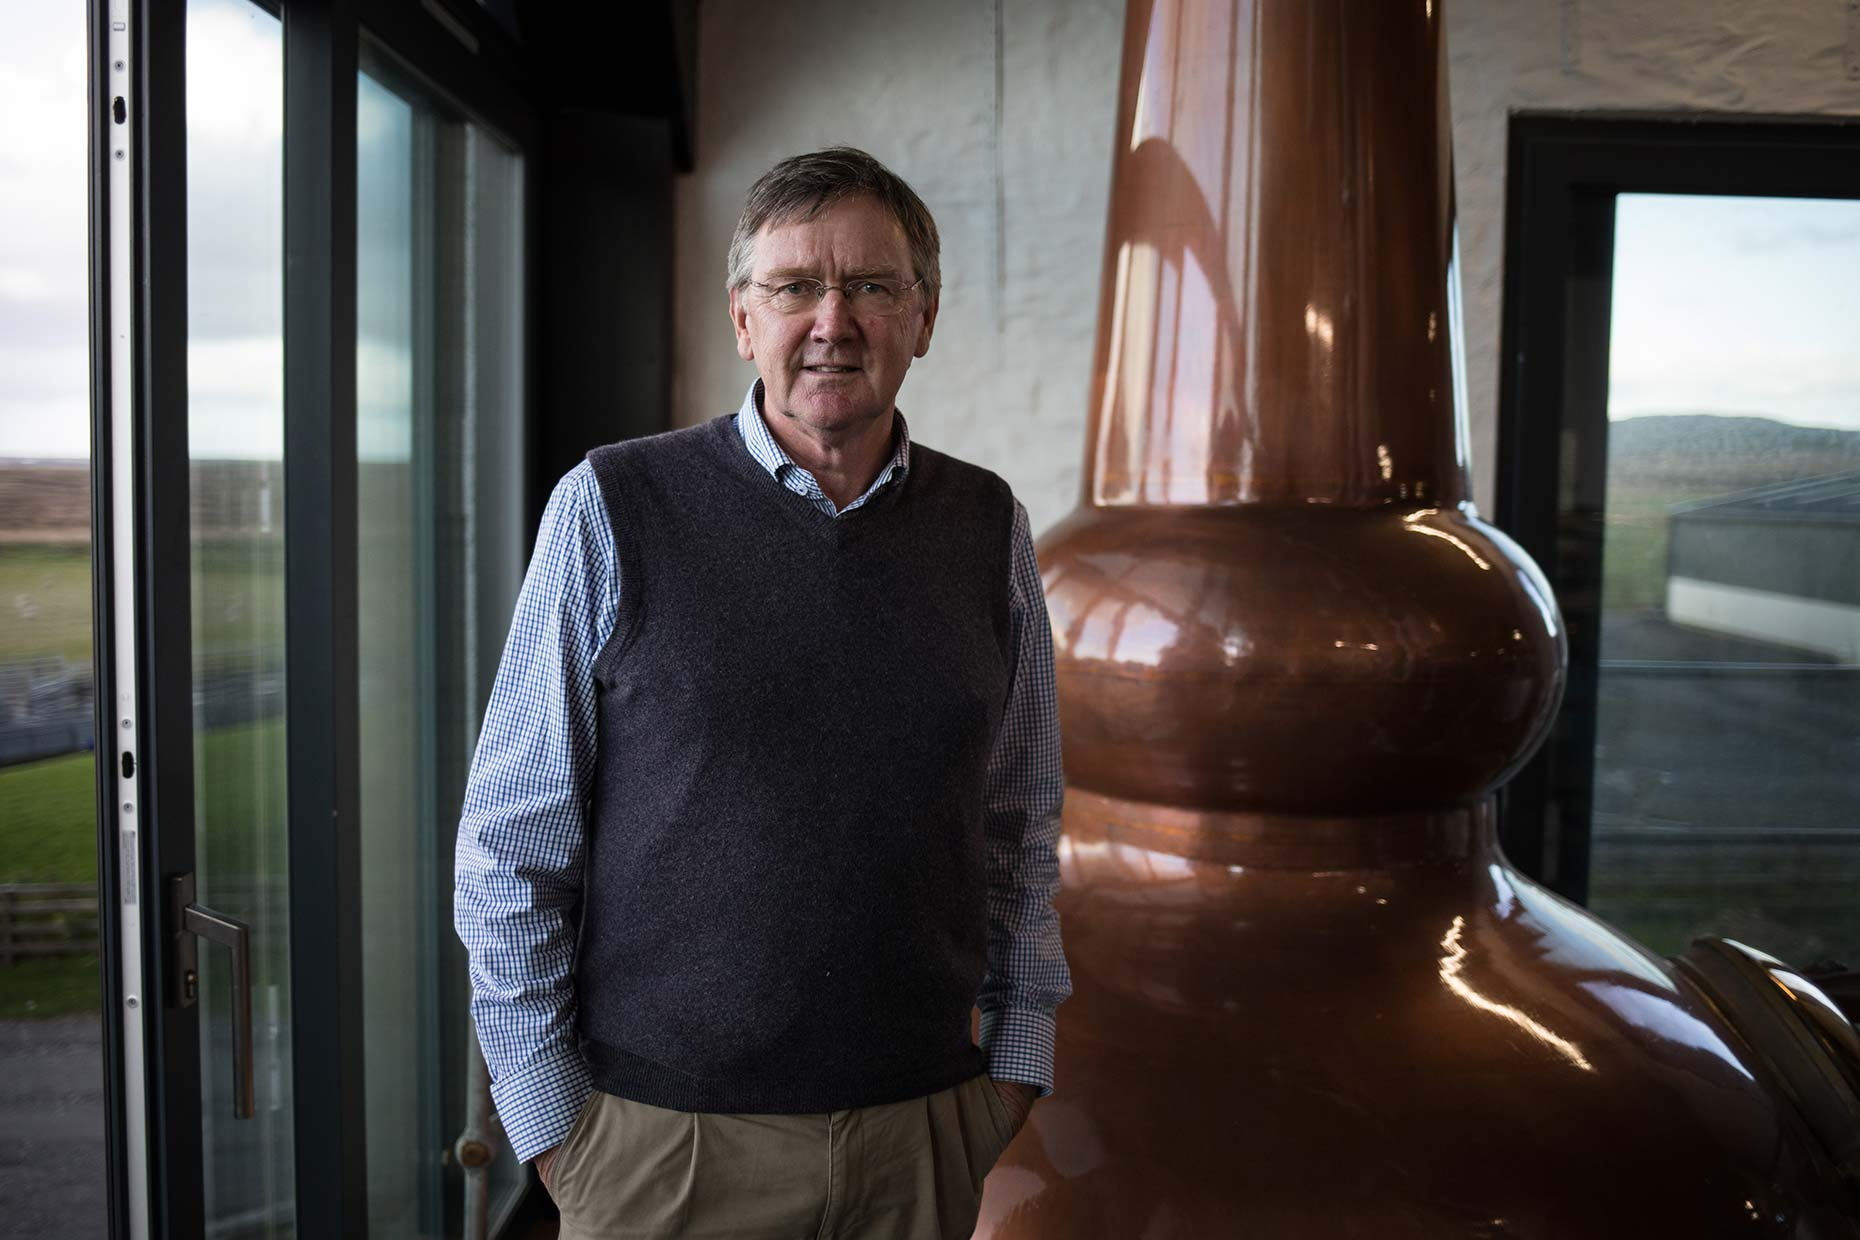 Anthony Wills, founder of Kilchoman single malt whisky distillery, Scotland